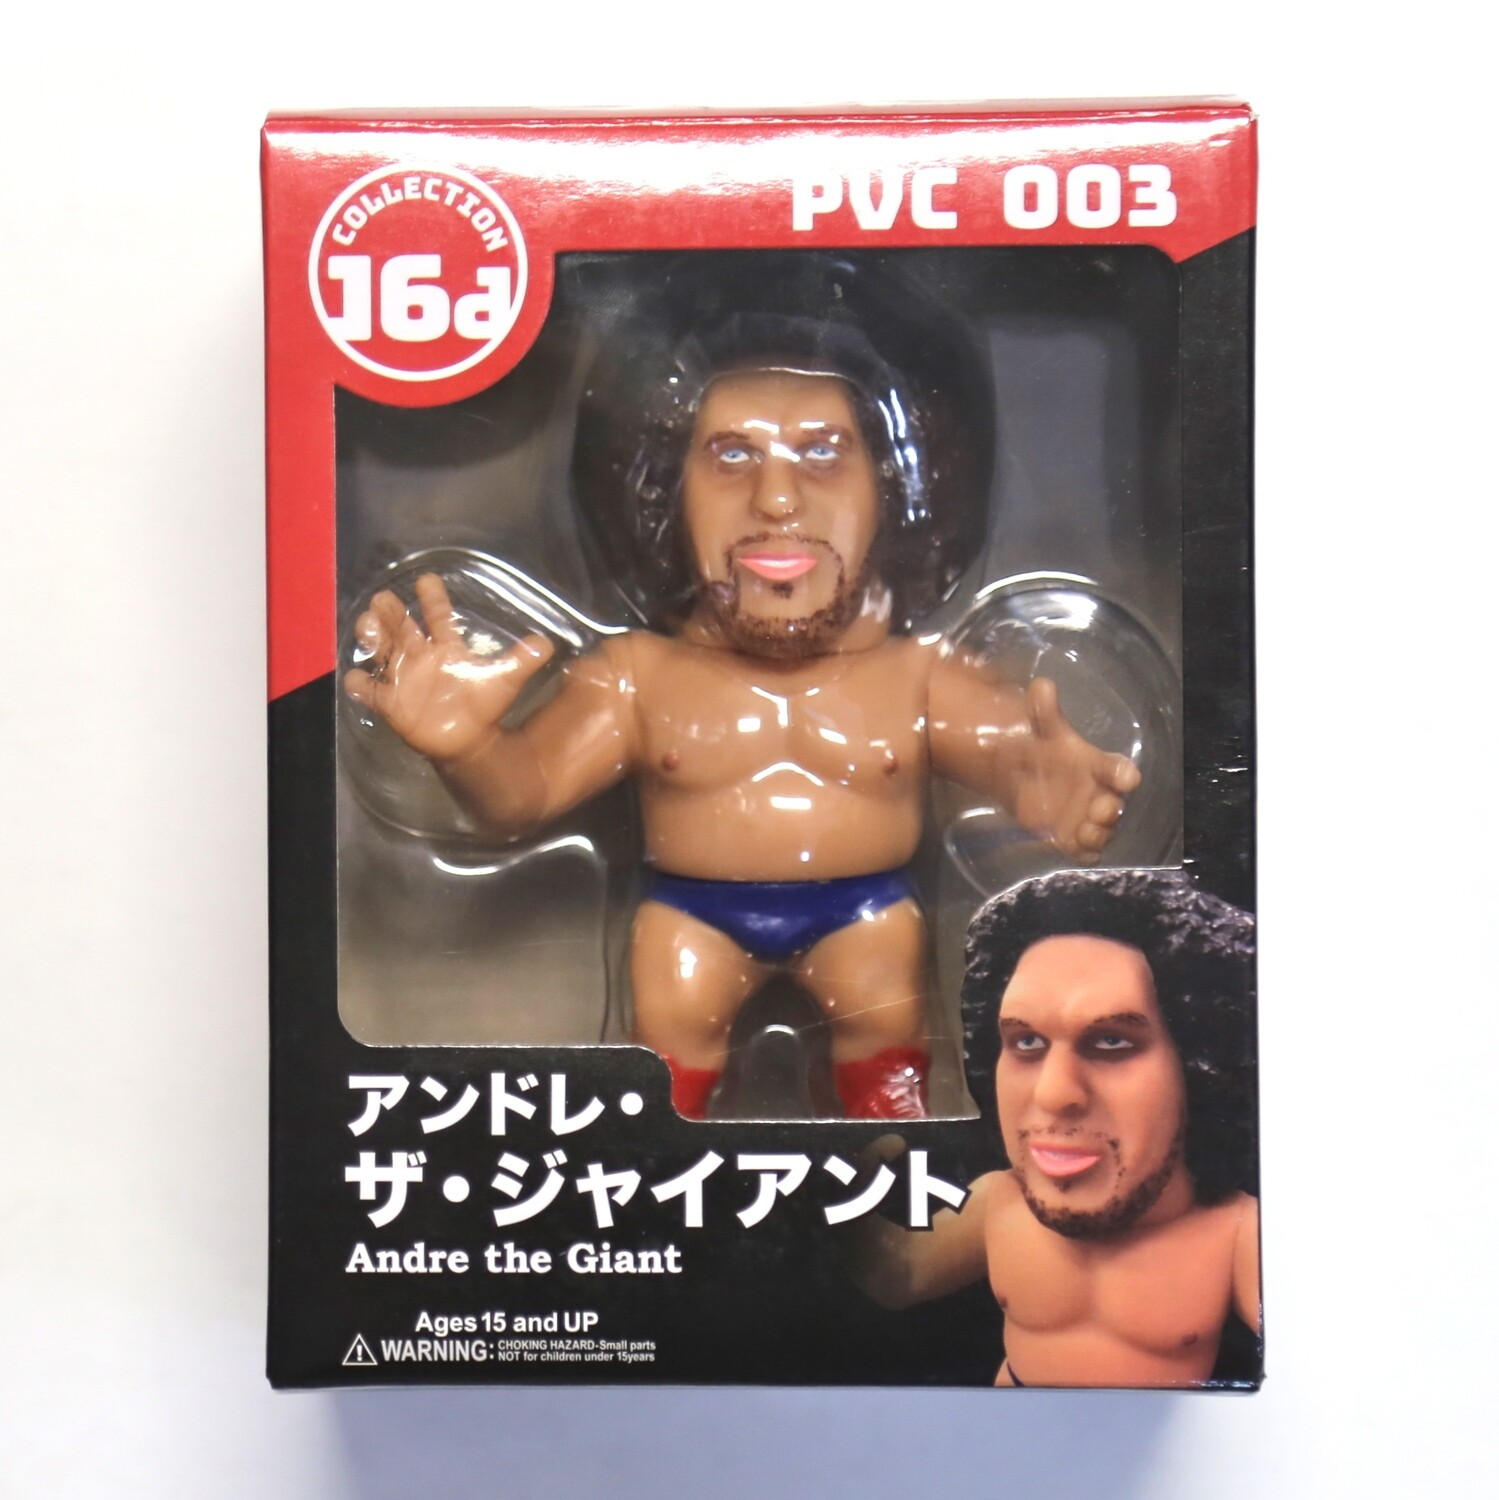 16d Collection Soft Vinyl Figure 003 Andre the Giant